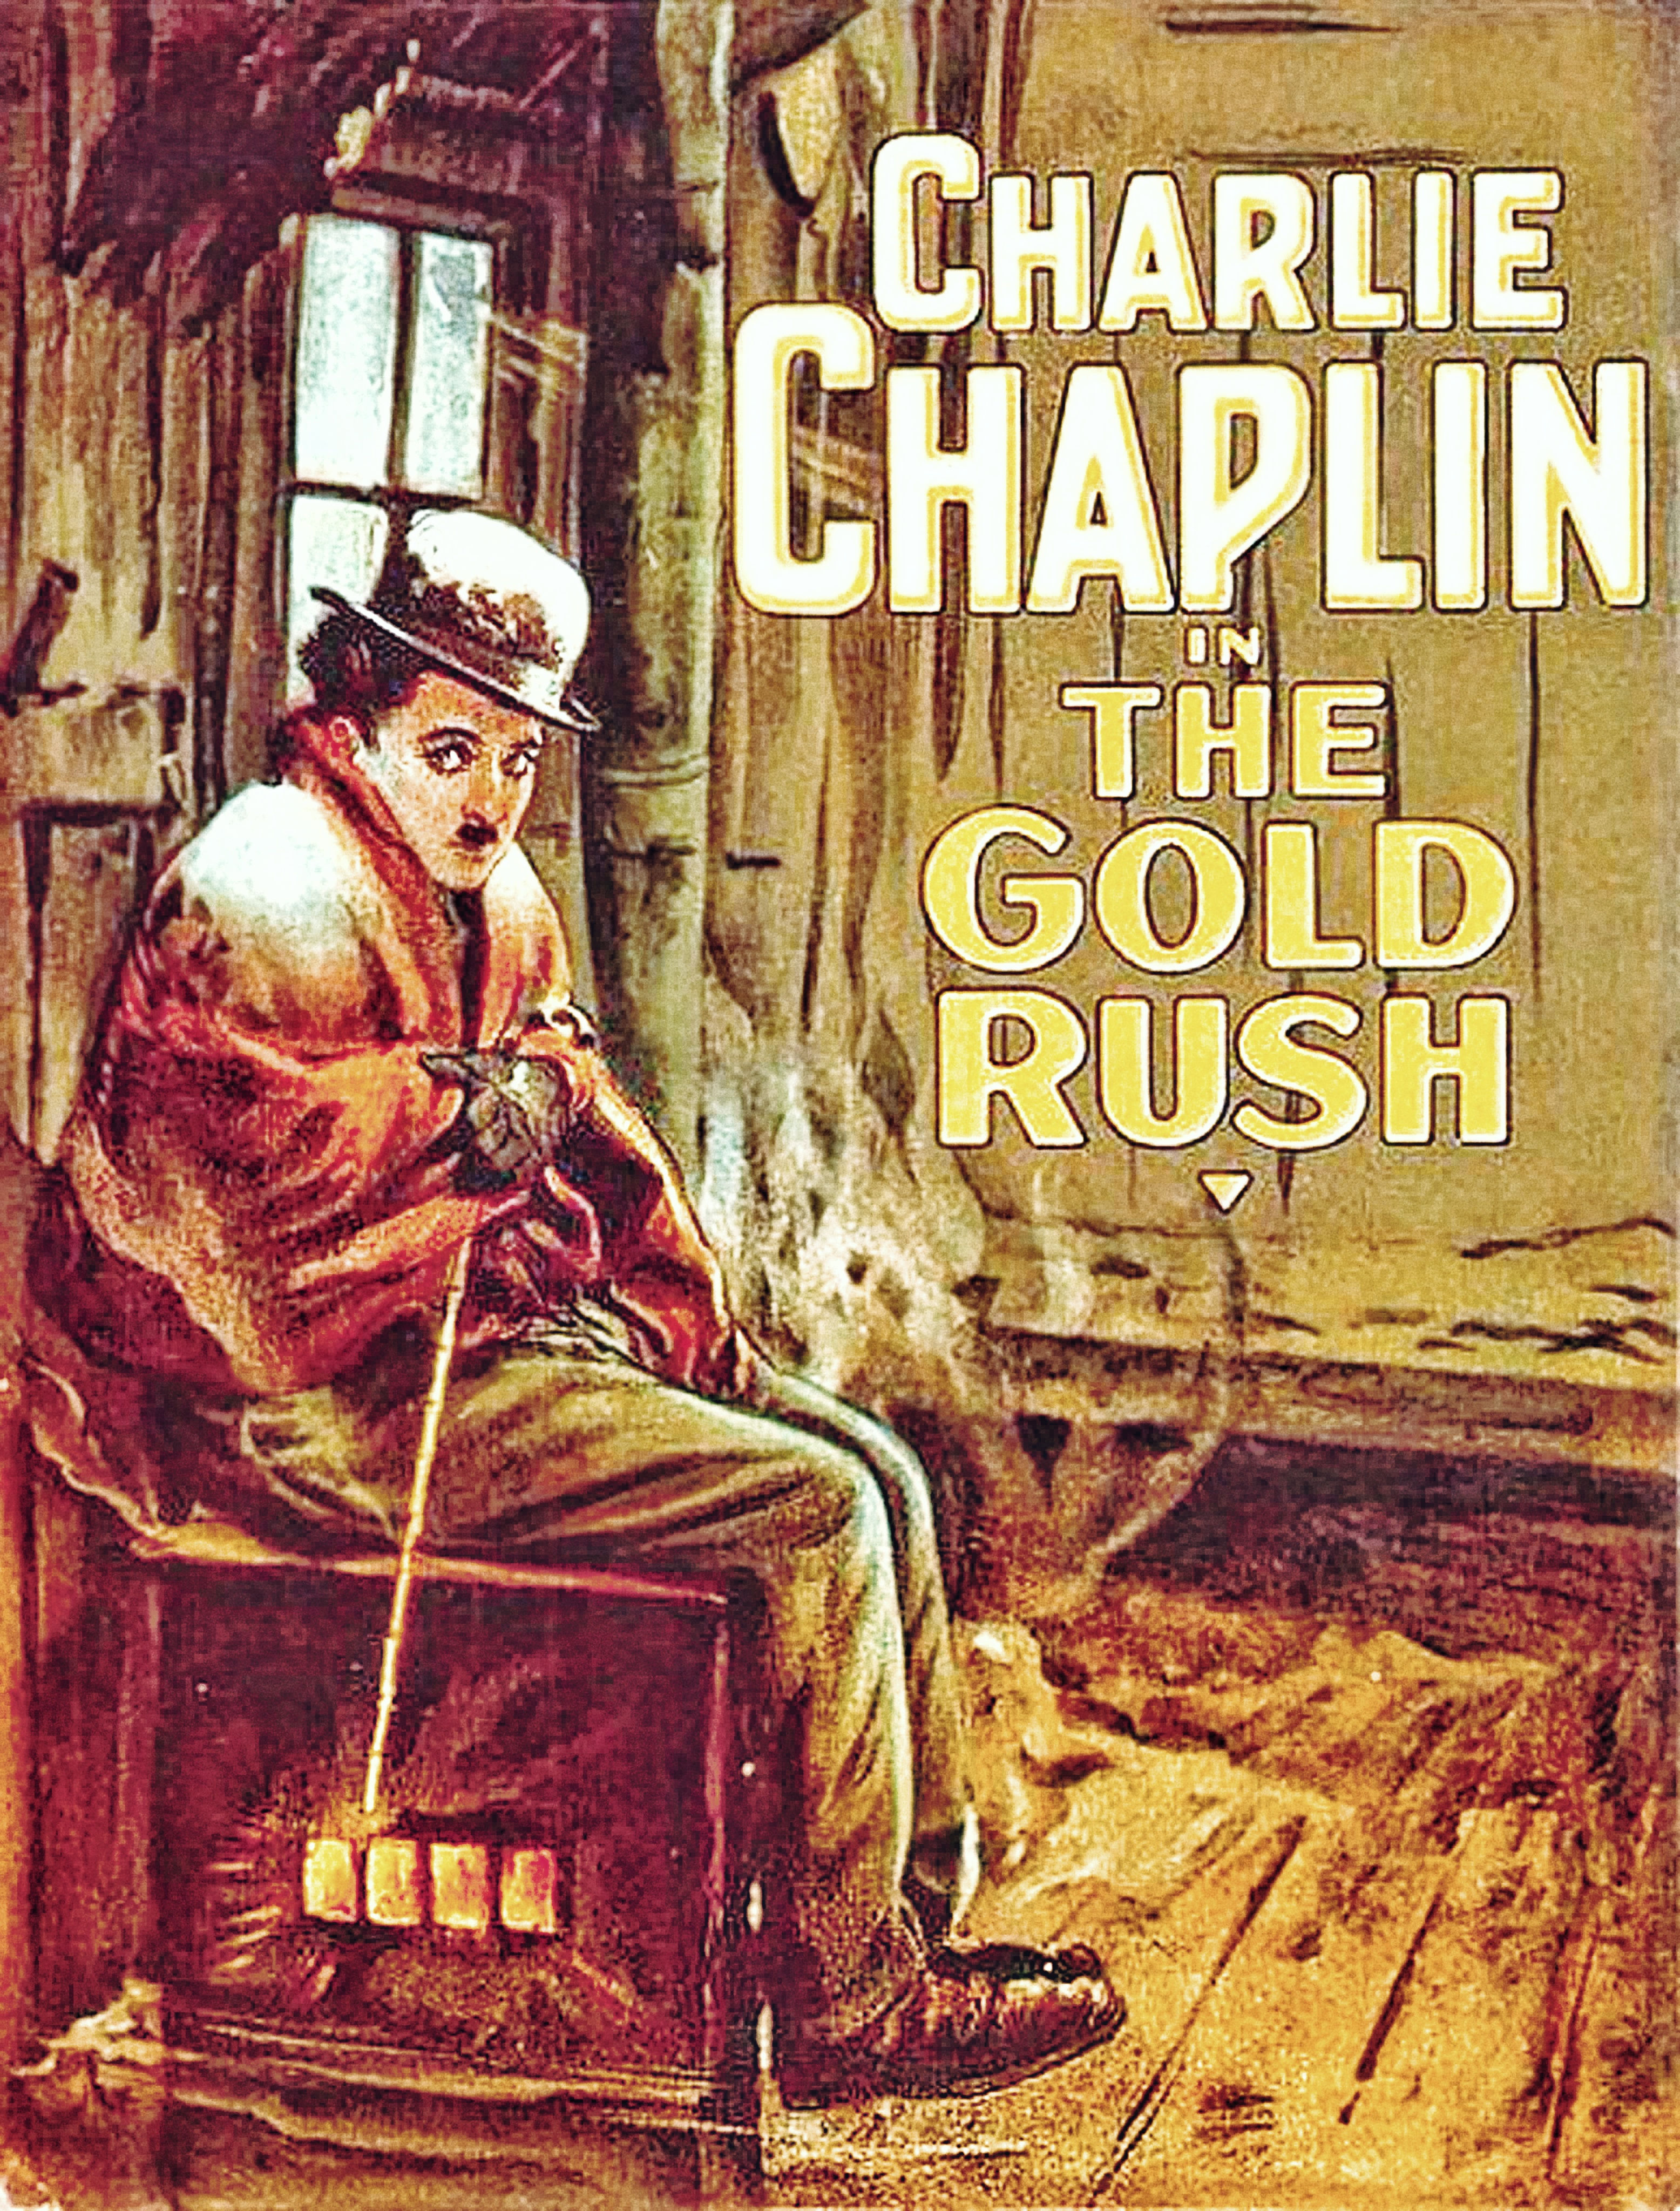 The Gold Rush - Wikipedia